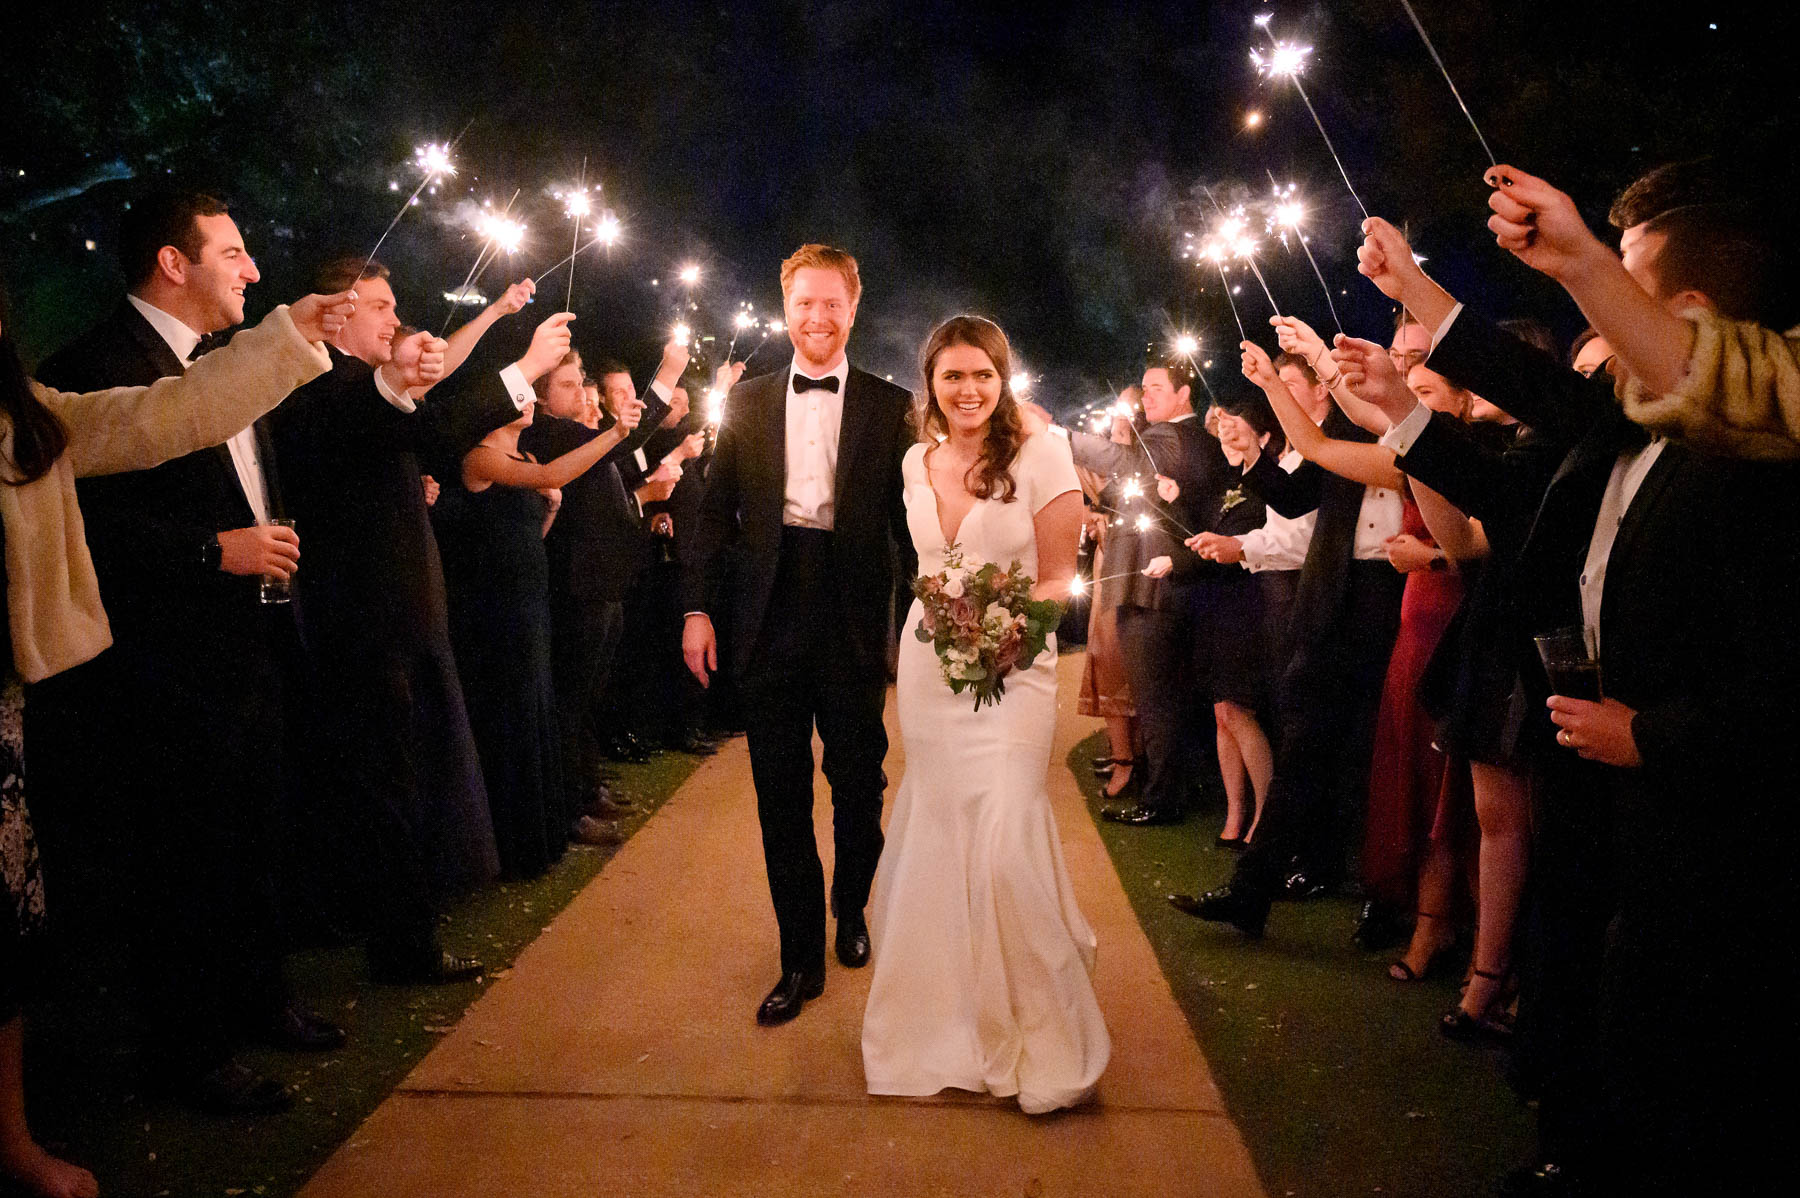 bride and groom walk out at the end of the night as guests hold up sparklers